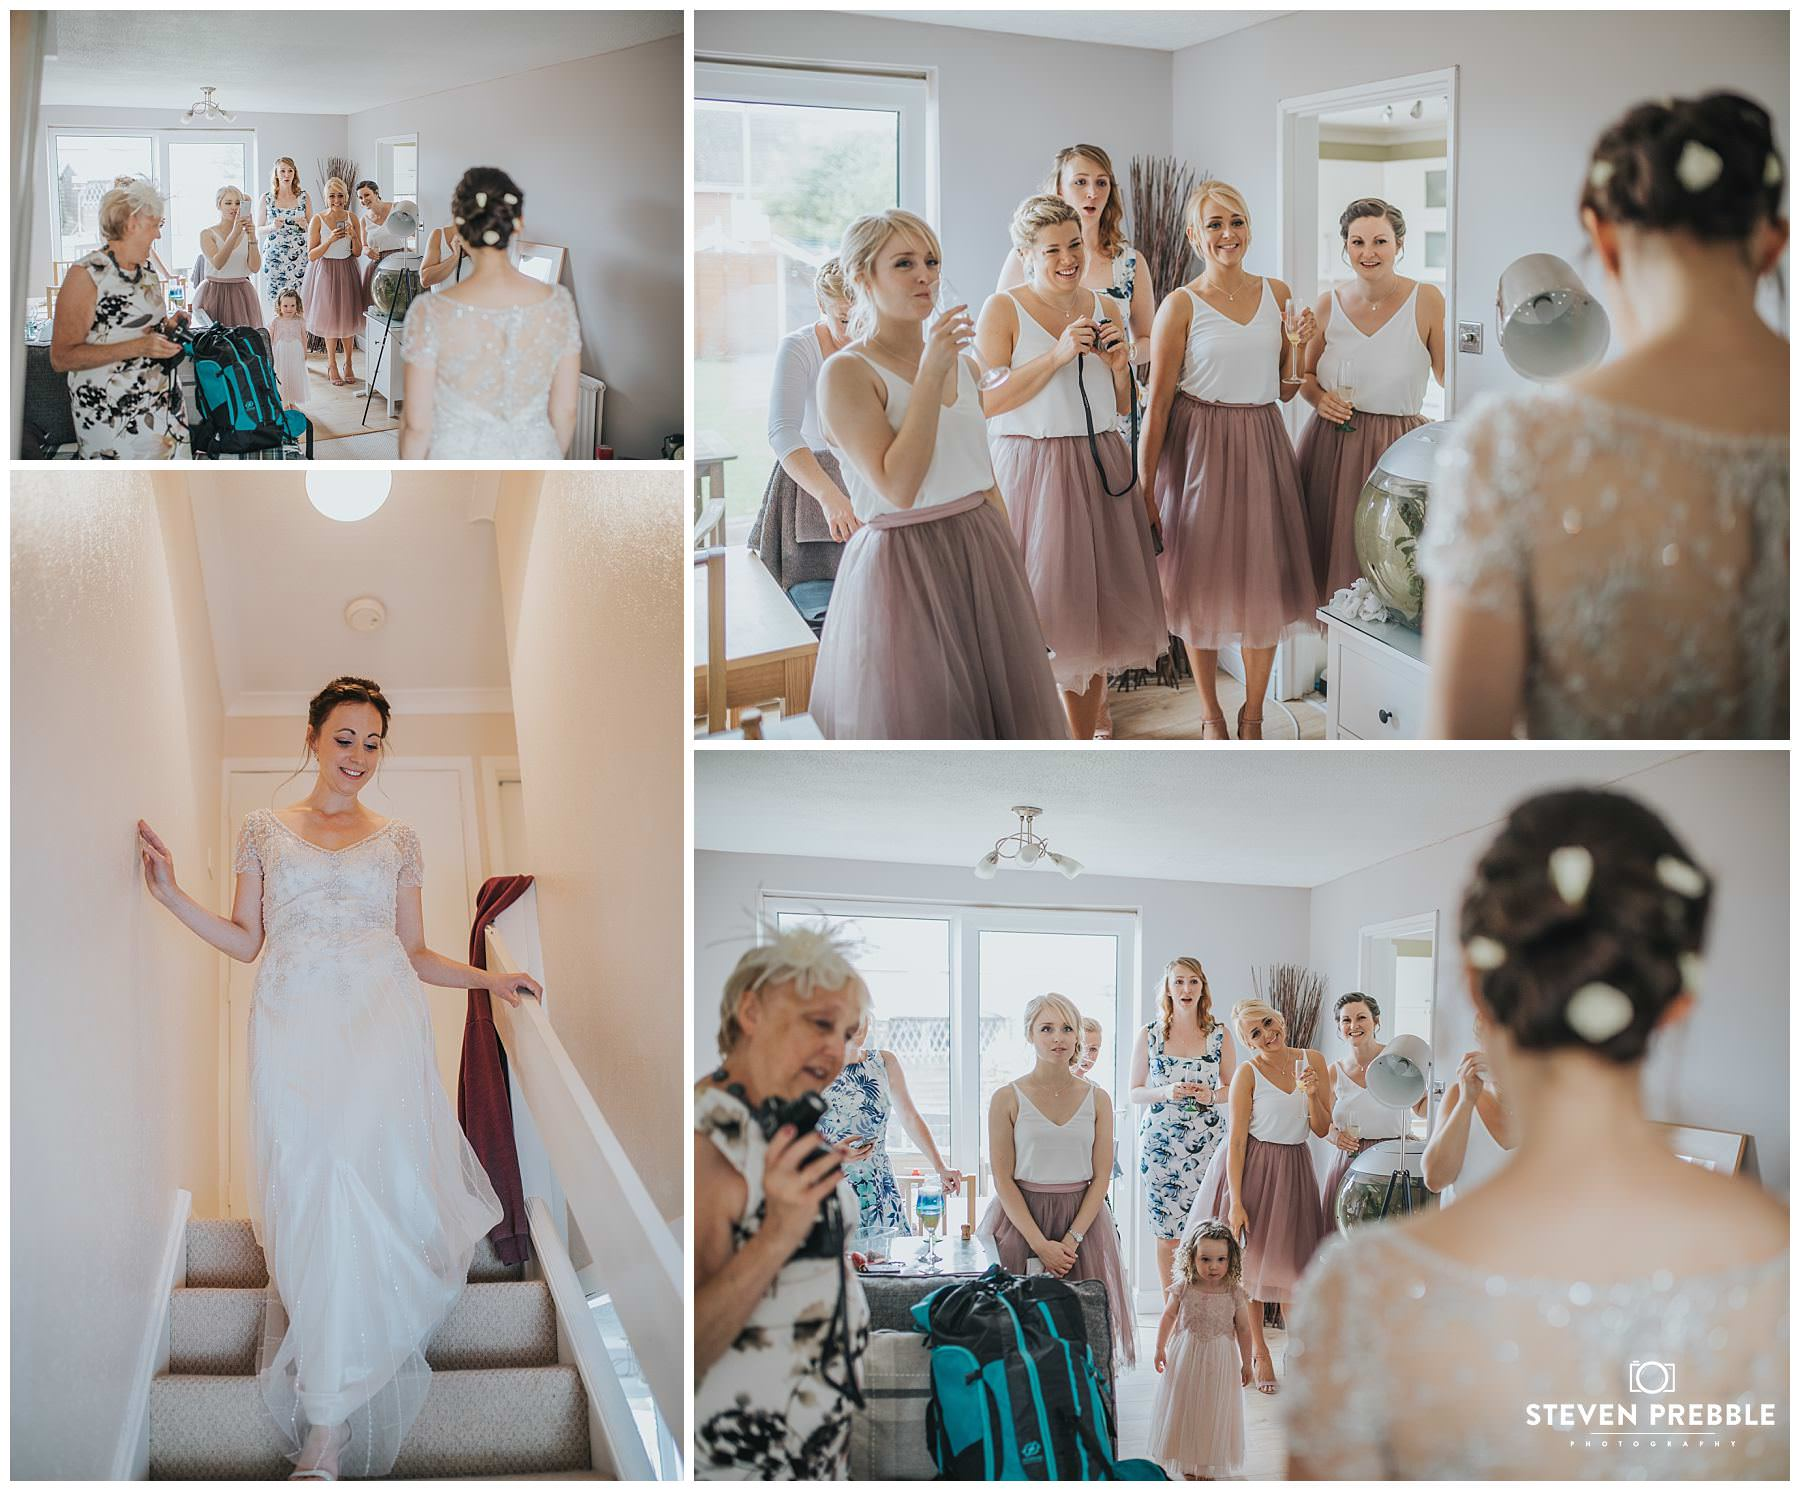 Bride revealing dress to bridesmaids